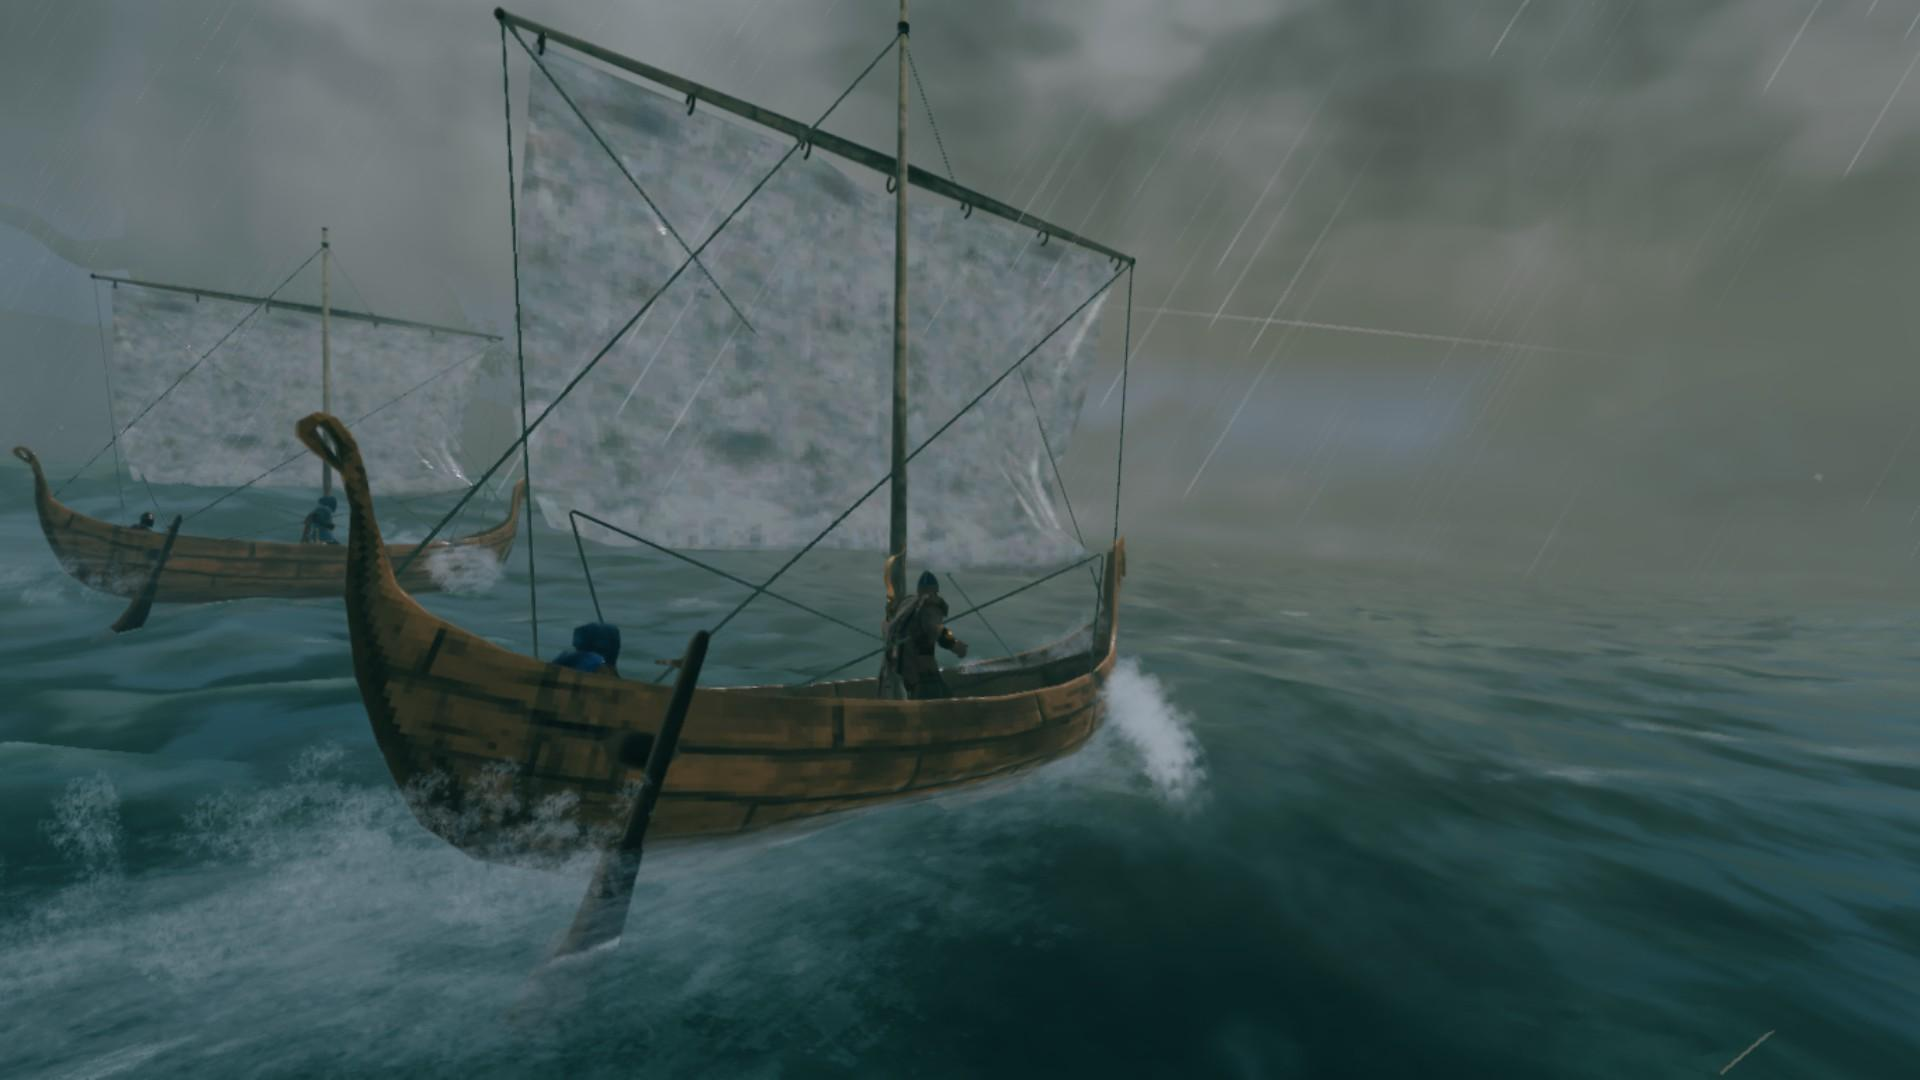 Valheim players hunting for Sea Serpents during a storm